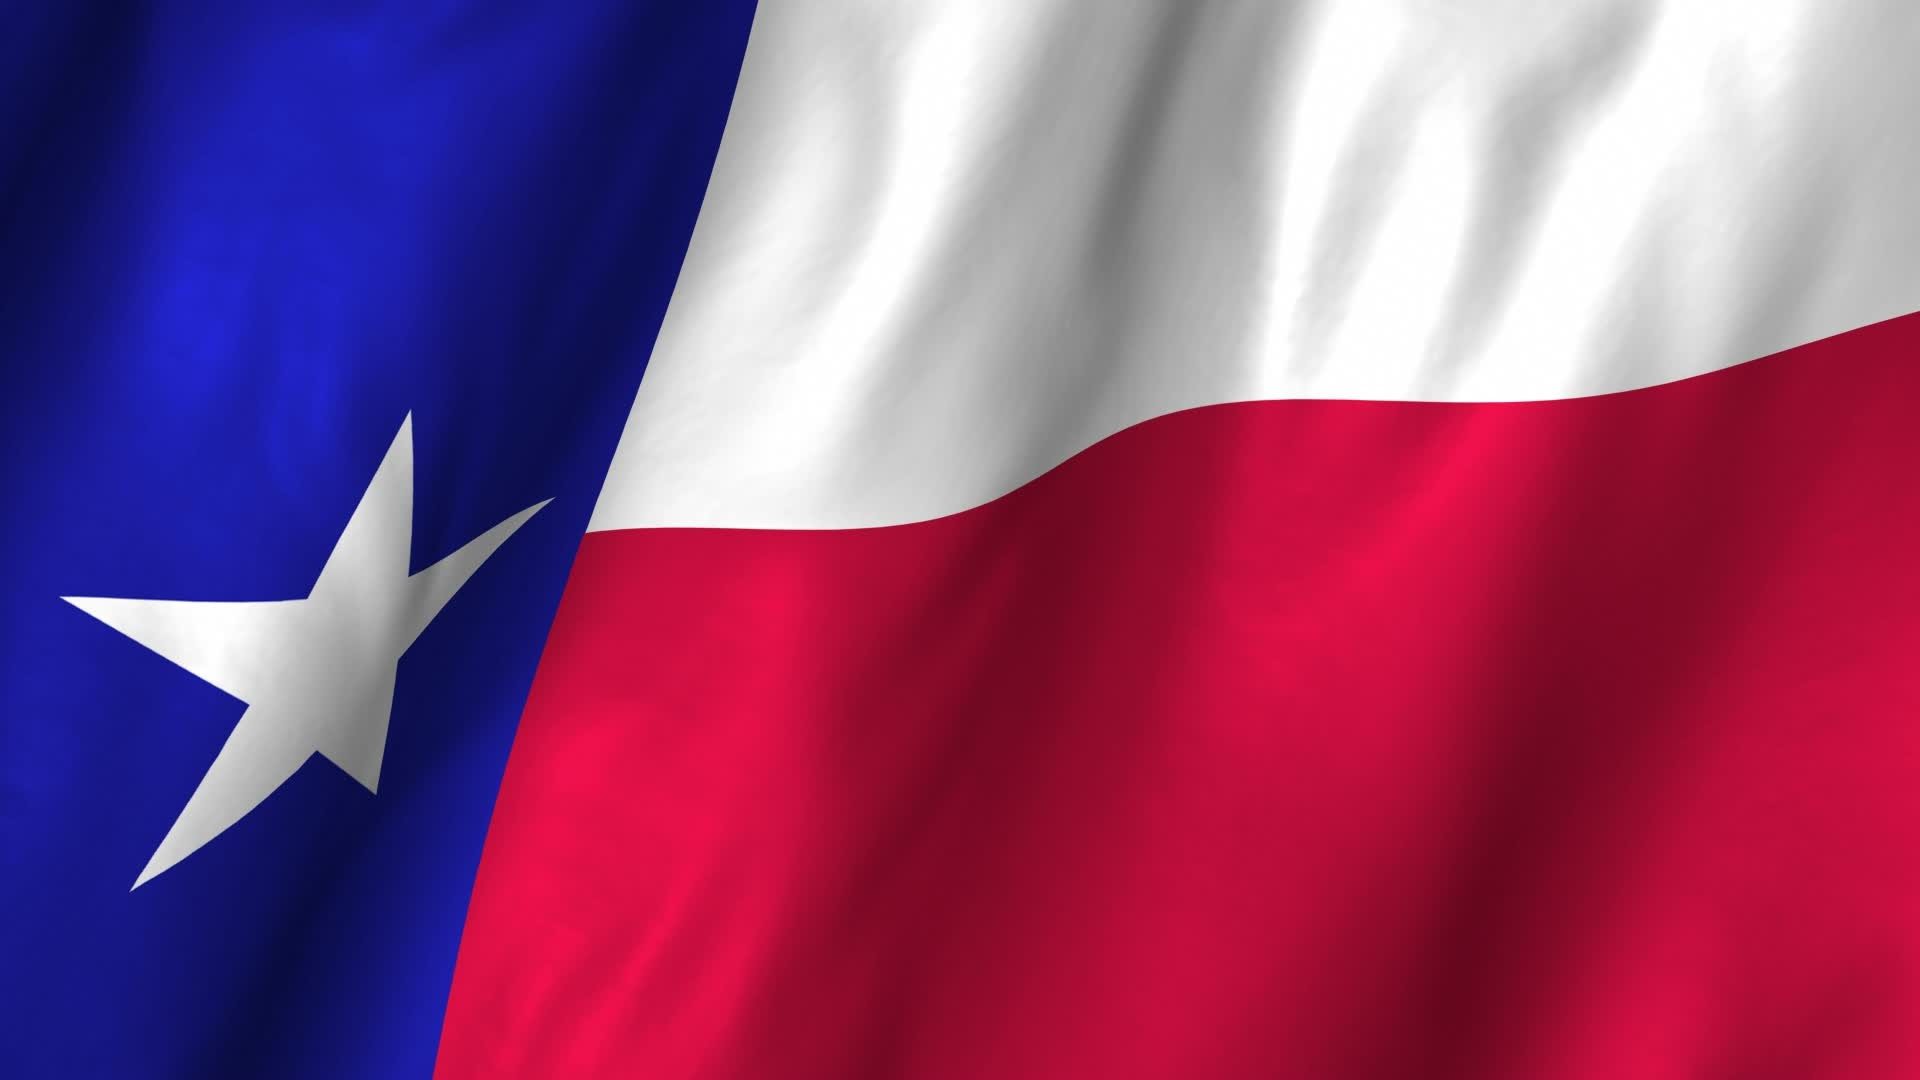 1920x1080 Texas Flag Computer Wallpaper Wallpapers texas flag view